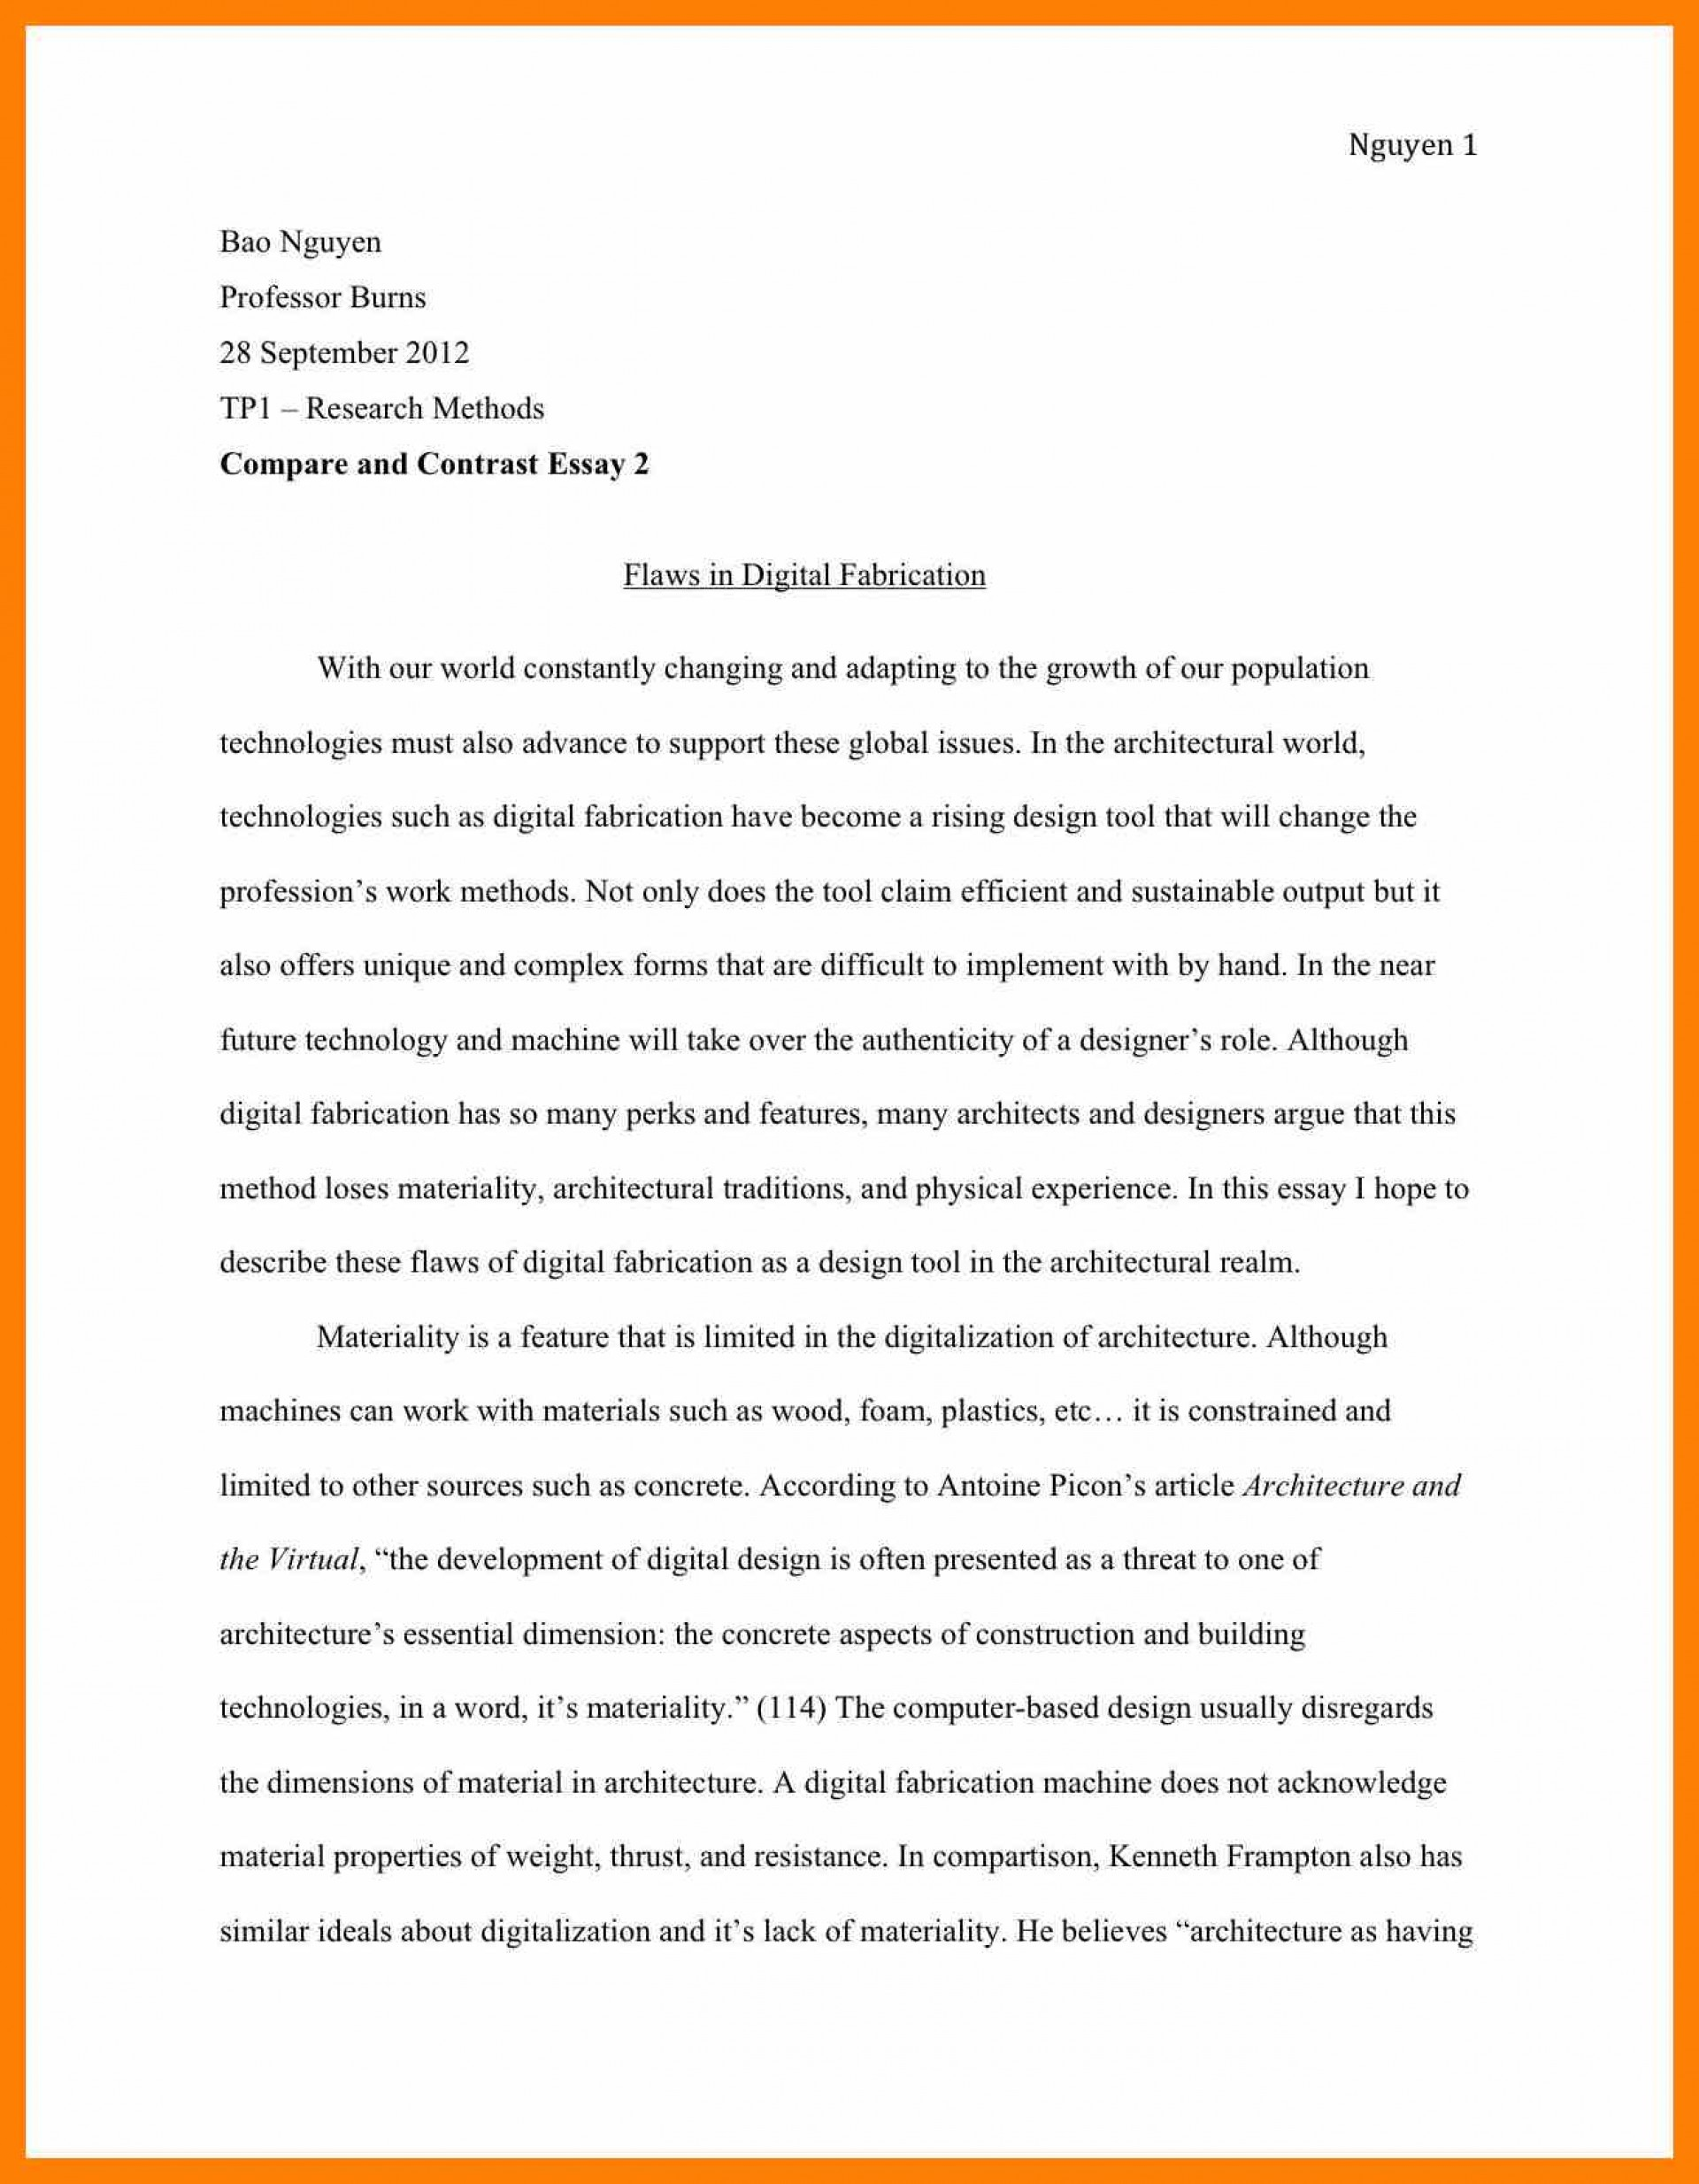 Essay On High School Dropouts  Persuasive Essay Samples For High School also Compare And Contrast Essay Sample Paper  Format For Biography Essay Example Driscoll  Thatsnotus Terrorism Essay In English